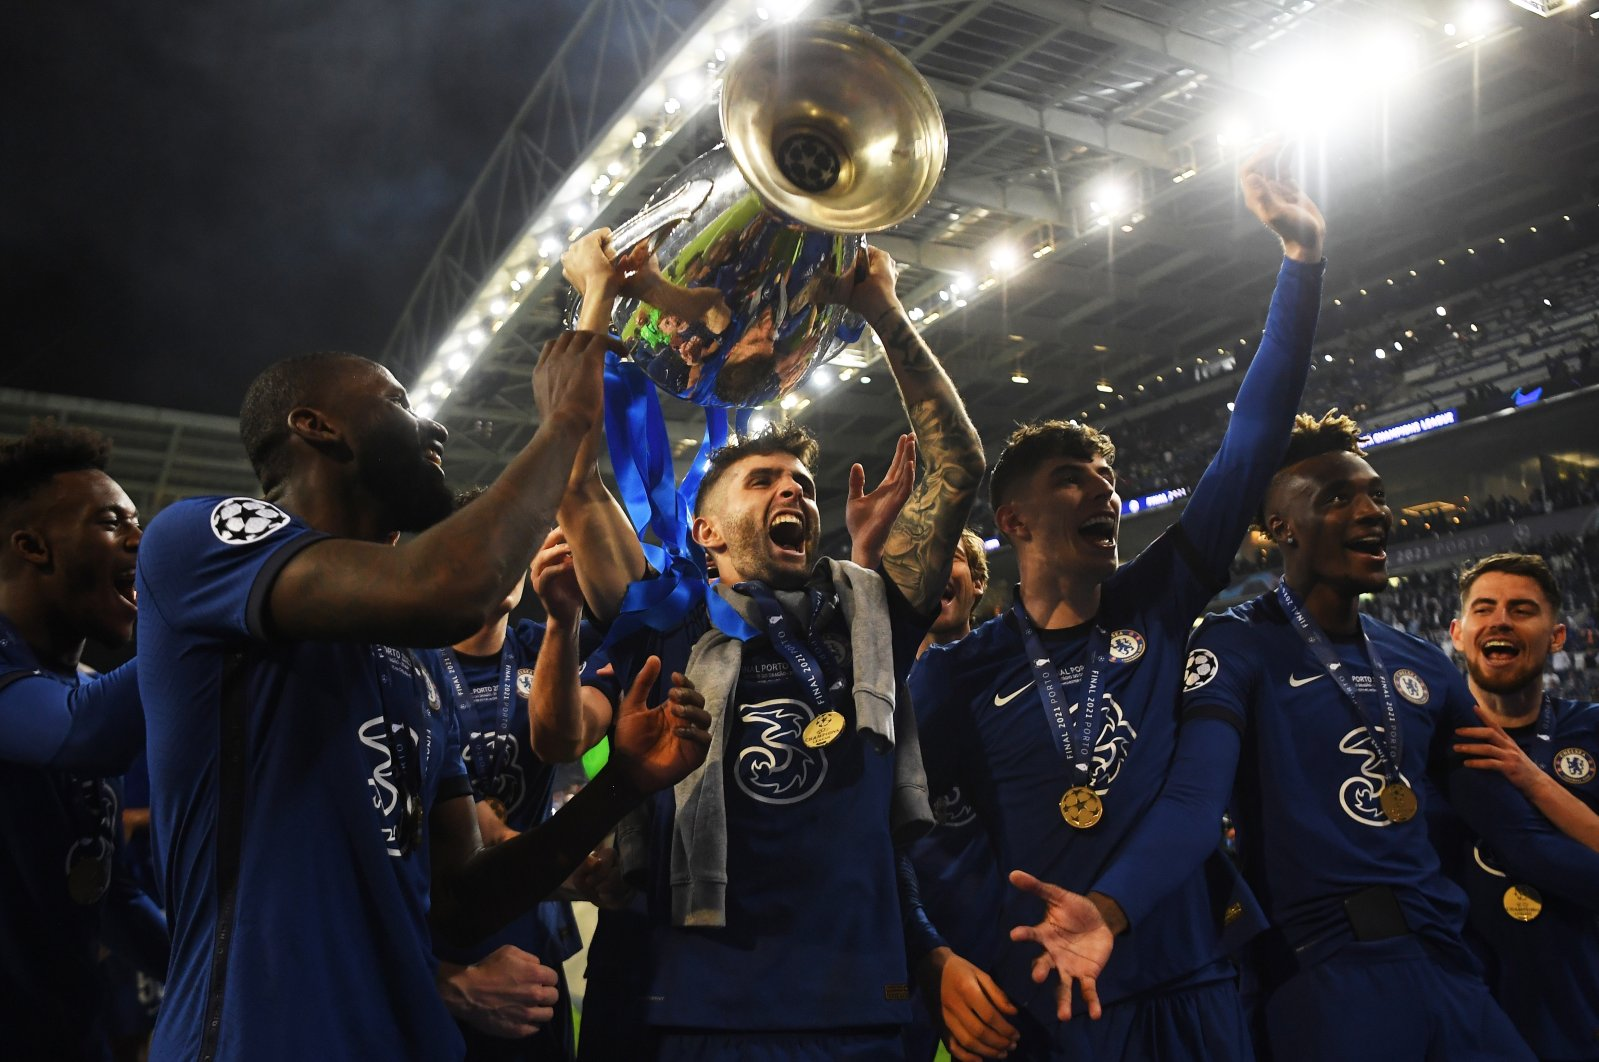 Christian Pulisic (C) of Chelsea lifts the trophy as he and teammates celebrate after winning the UEFA Champions League final against Manchester City, Porto, Portugal, May 29, 2021. (EPA Photo)